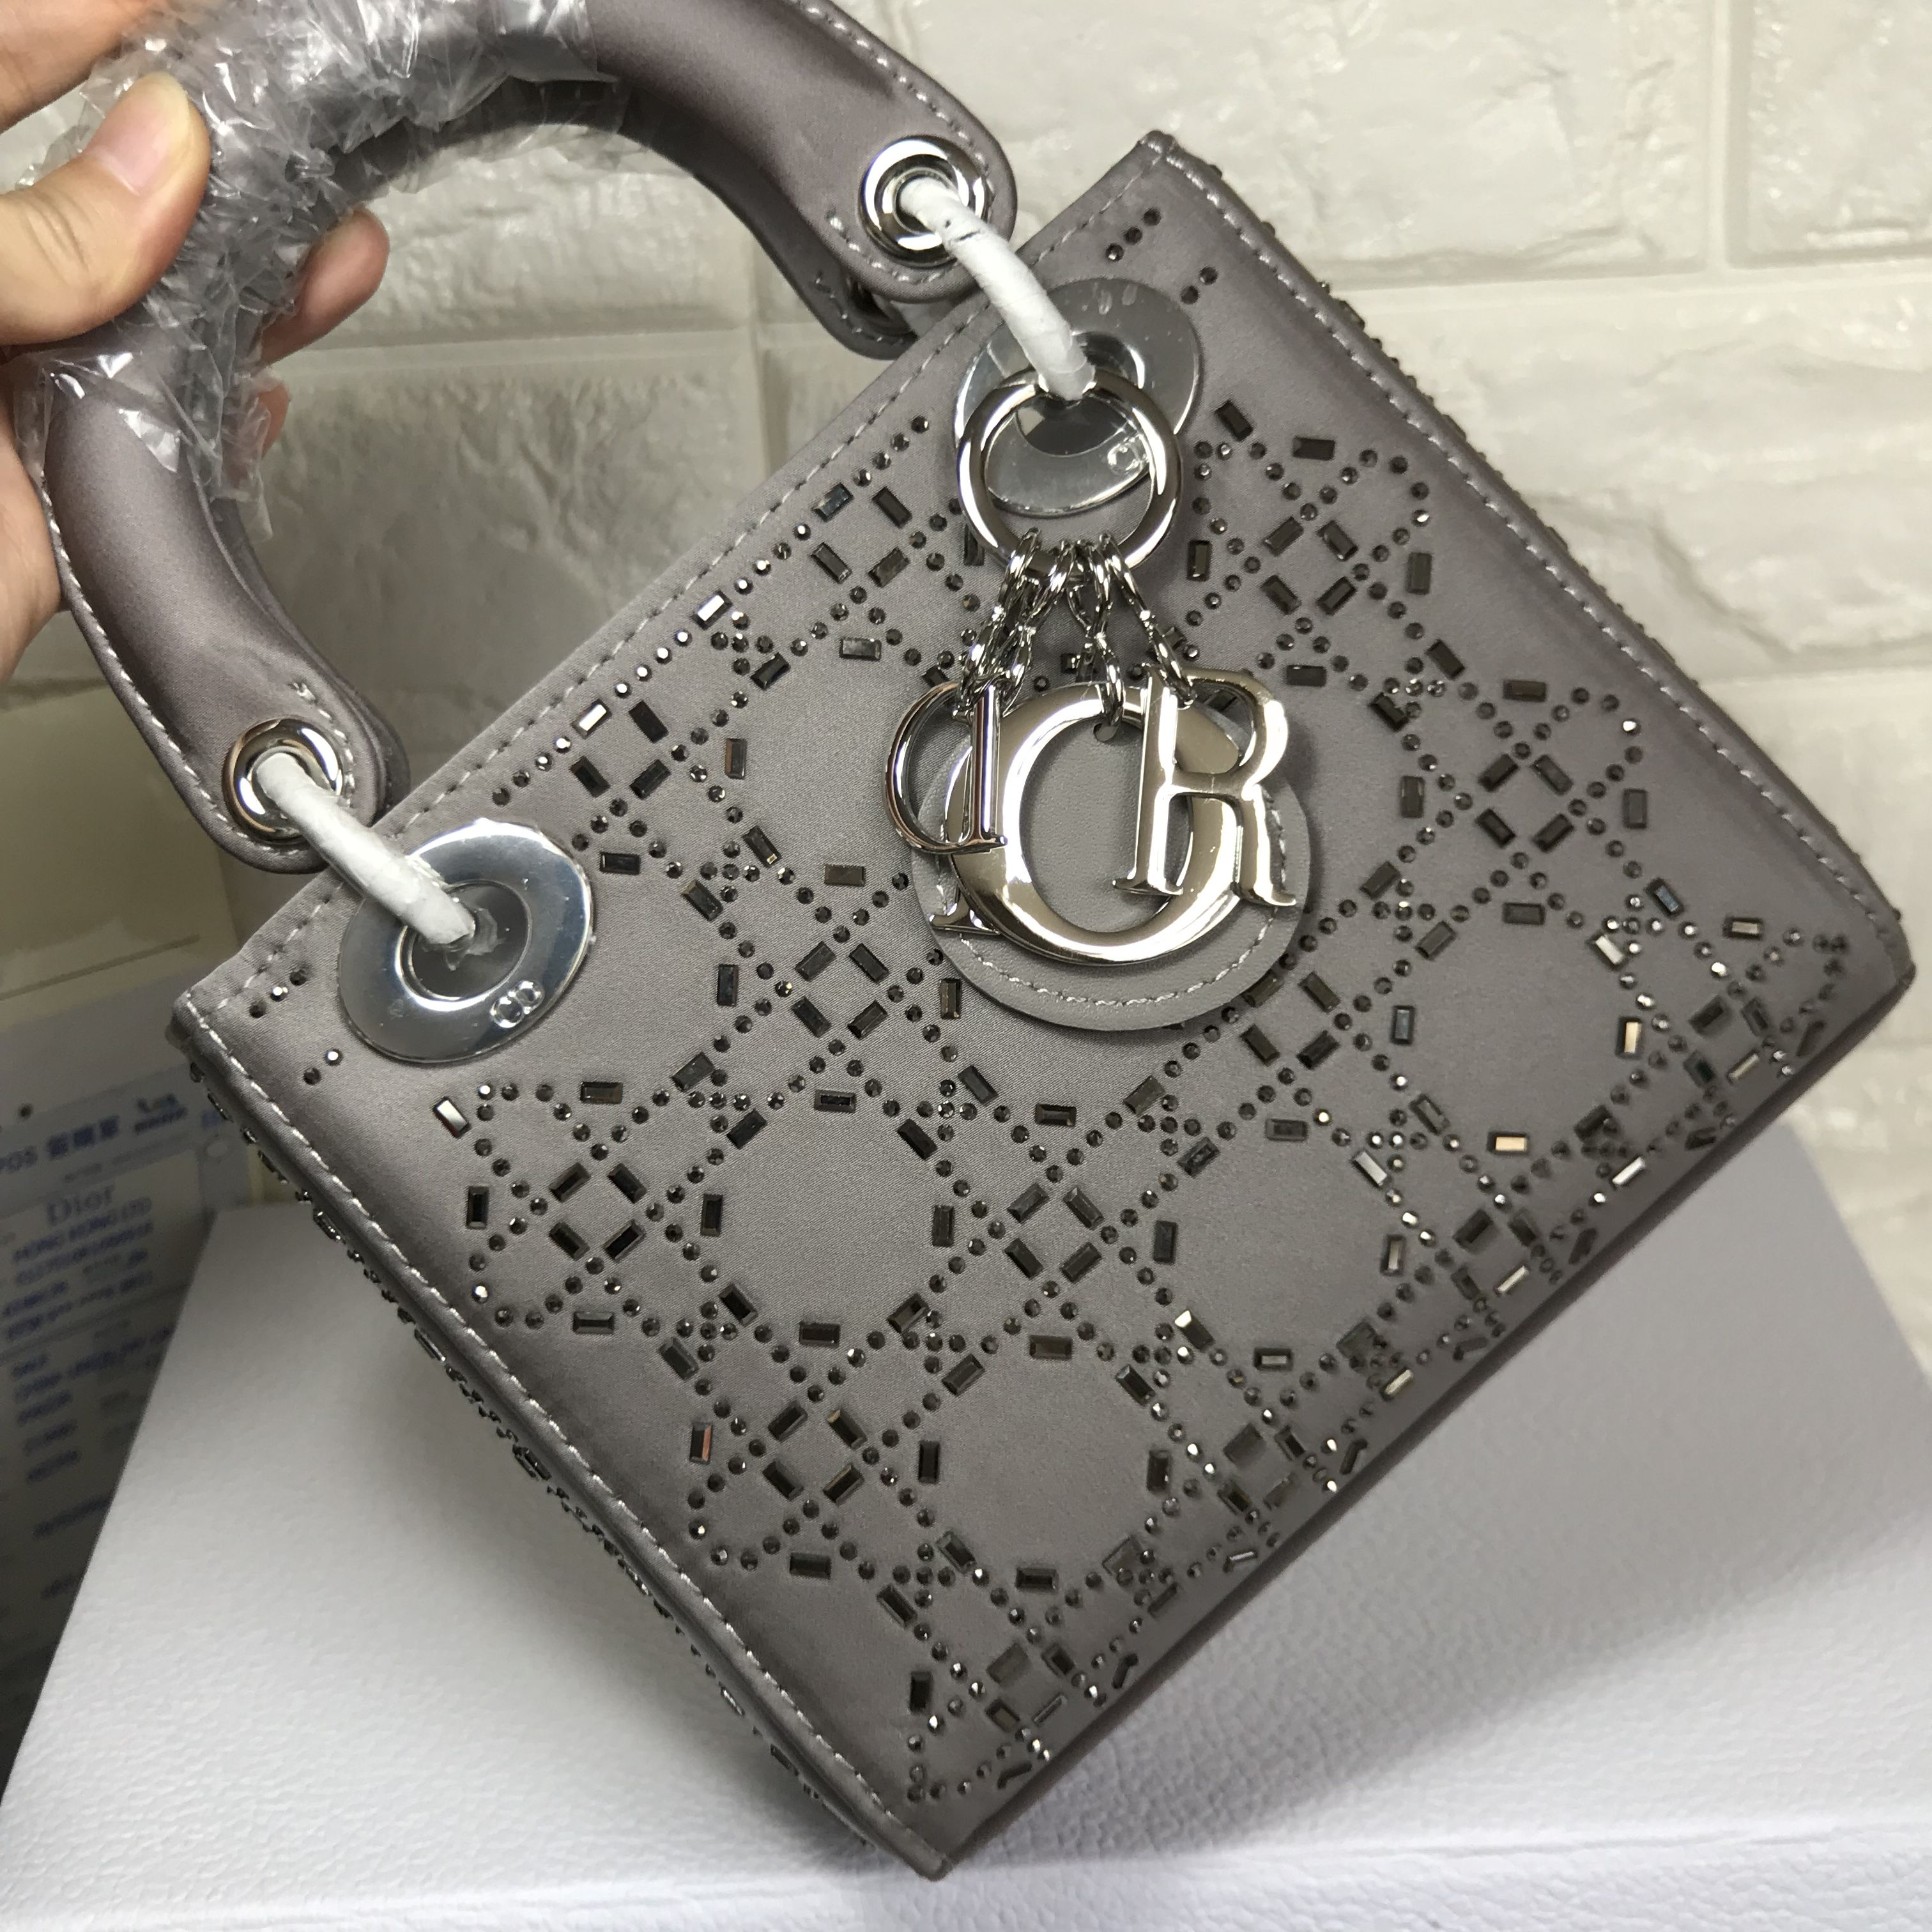 fda0a93514fa Christian Dior lady handbag mini size real silk with crystal stones  original leather version